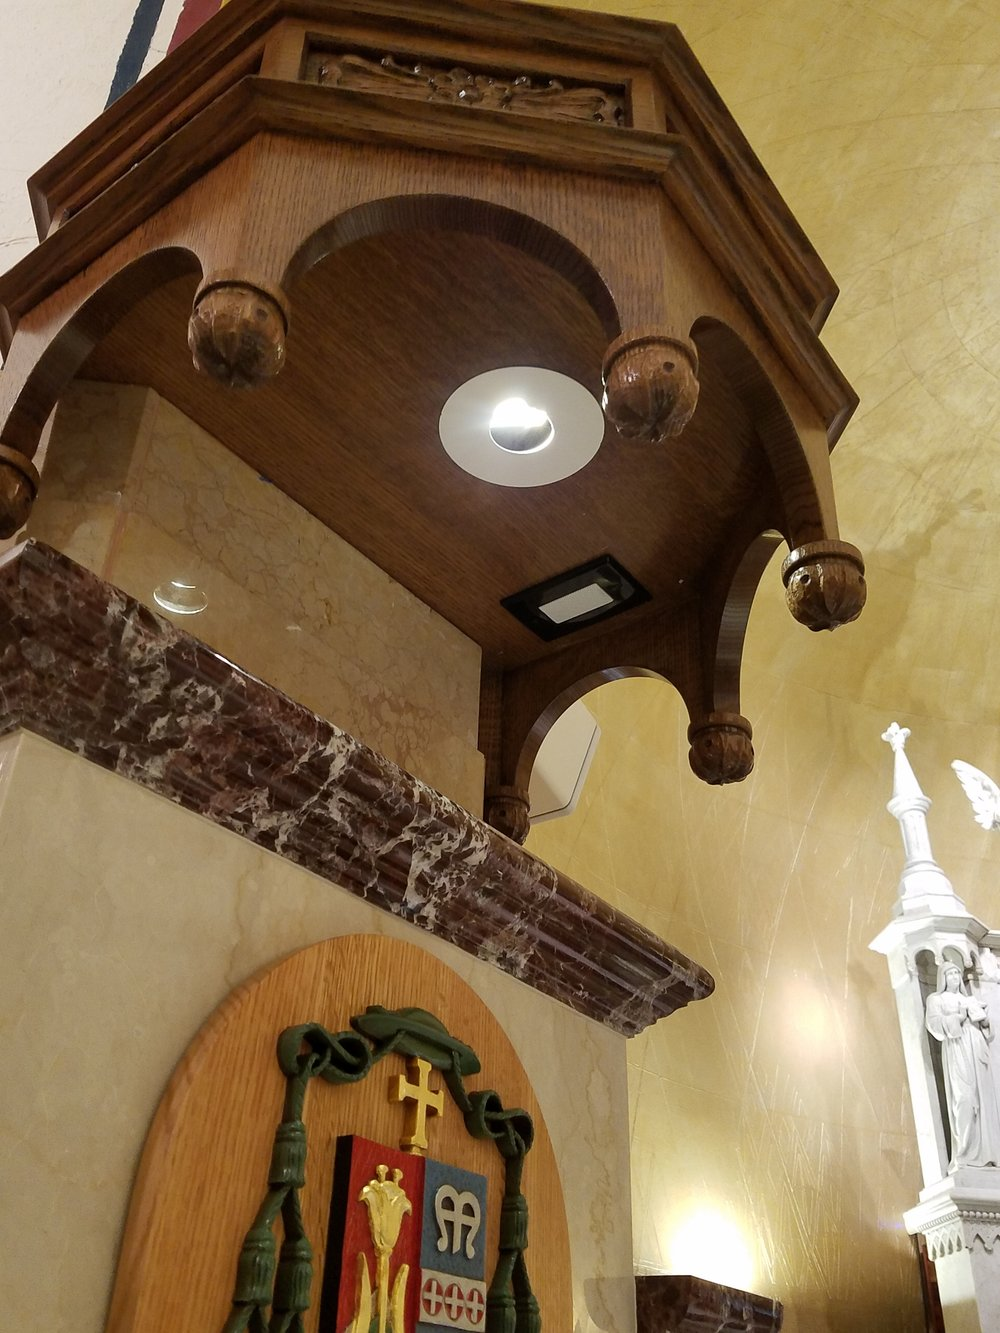 A custom speaker is mounted in the Cathedra for the bishop